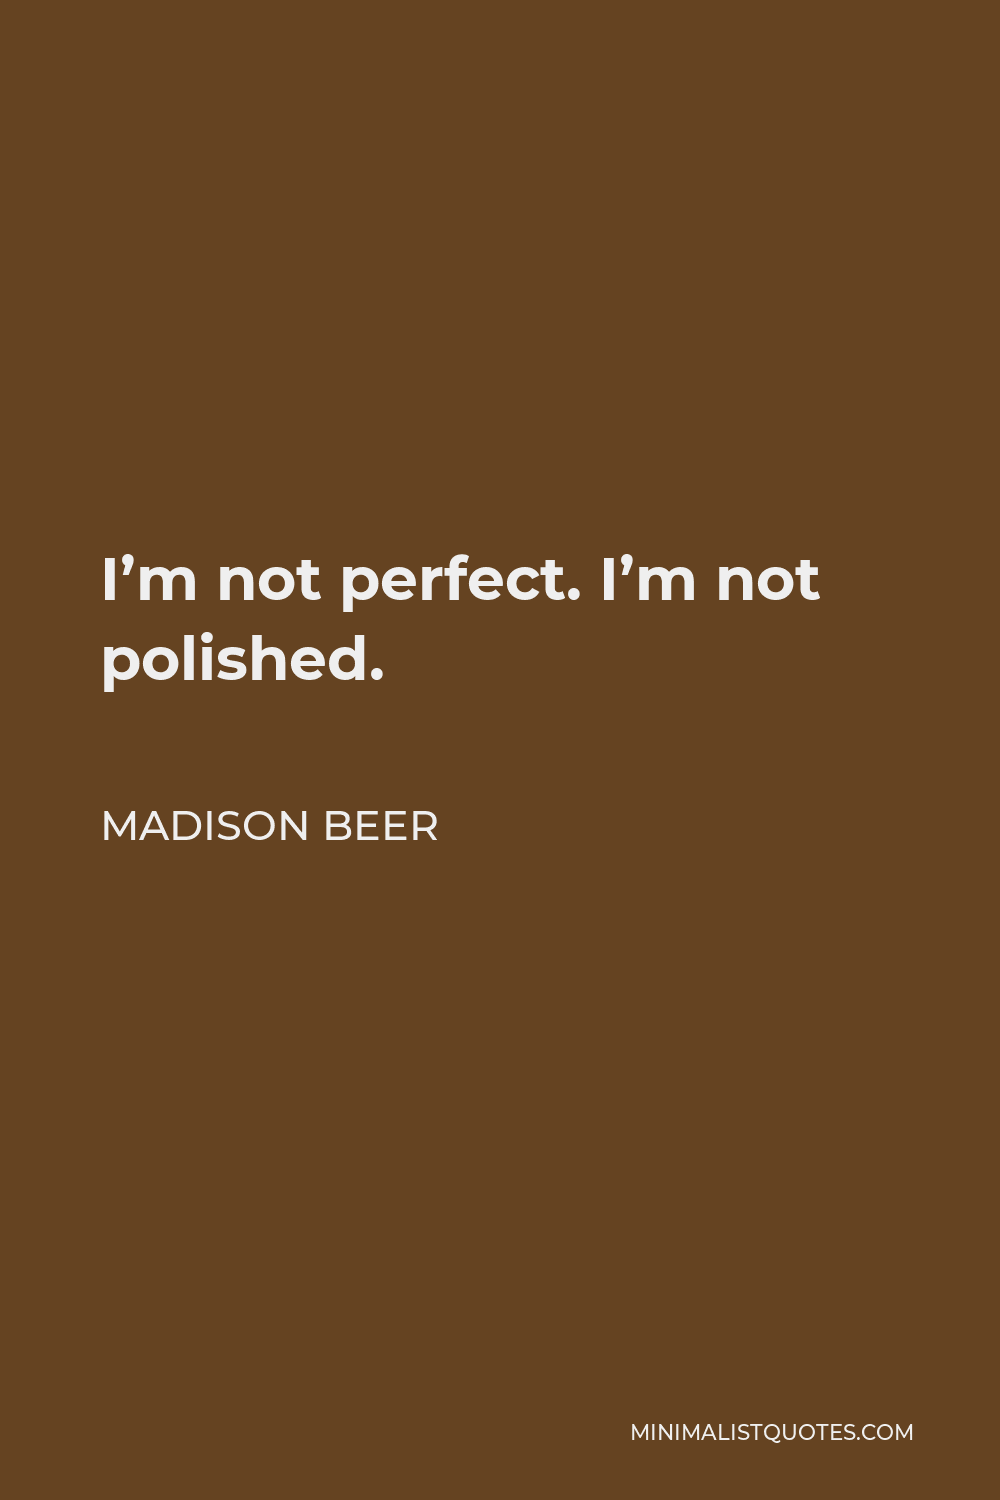 Madison Beer Quote - I'm not perfect. I'm not polished.